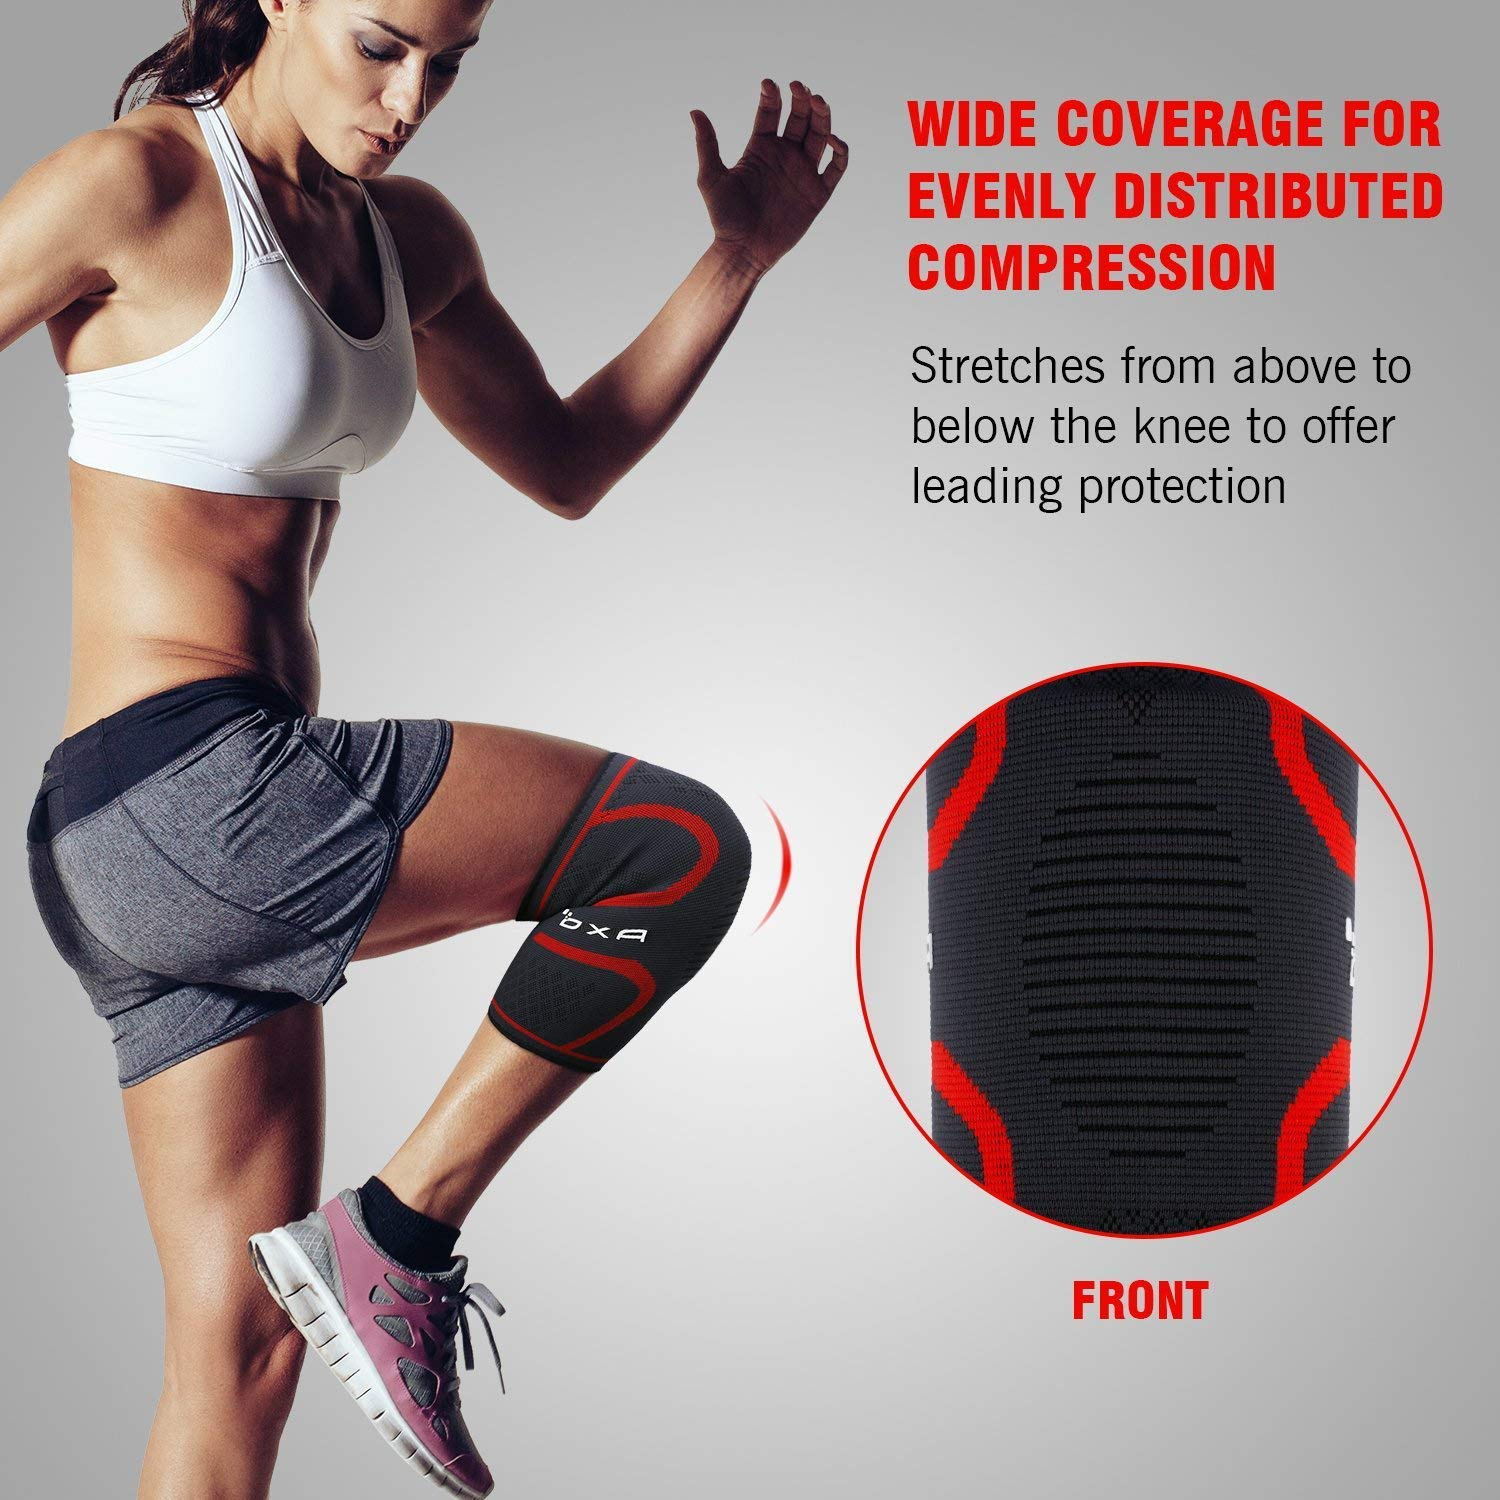 Knee Sleeves 2 Packs Compression Knee Brace Women Men Cycling Leg Knee Warmers, Support for All Sports